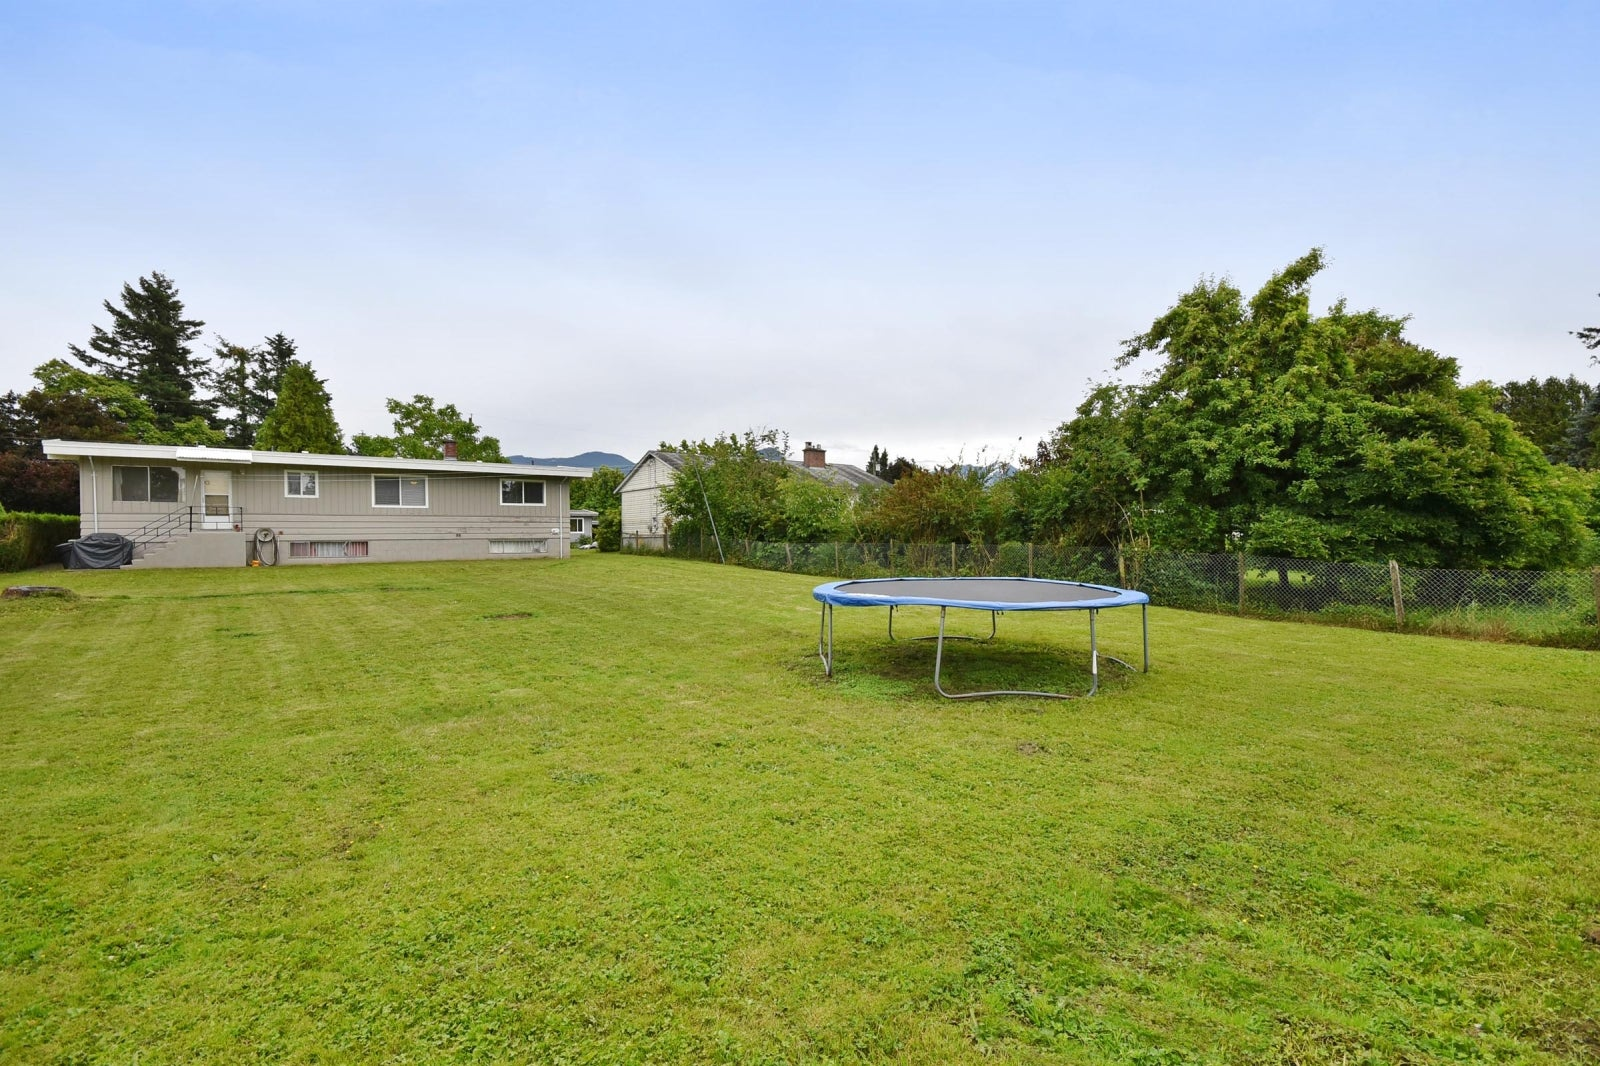 9445 CARLETON STREET - Chilliwack E Young-Yale House/Single Family for sale, 3 Bedrooms (R2180991) #19